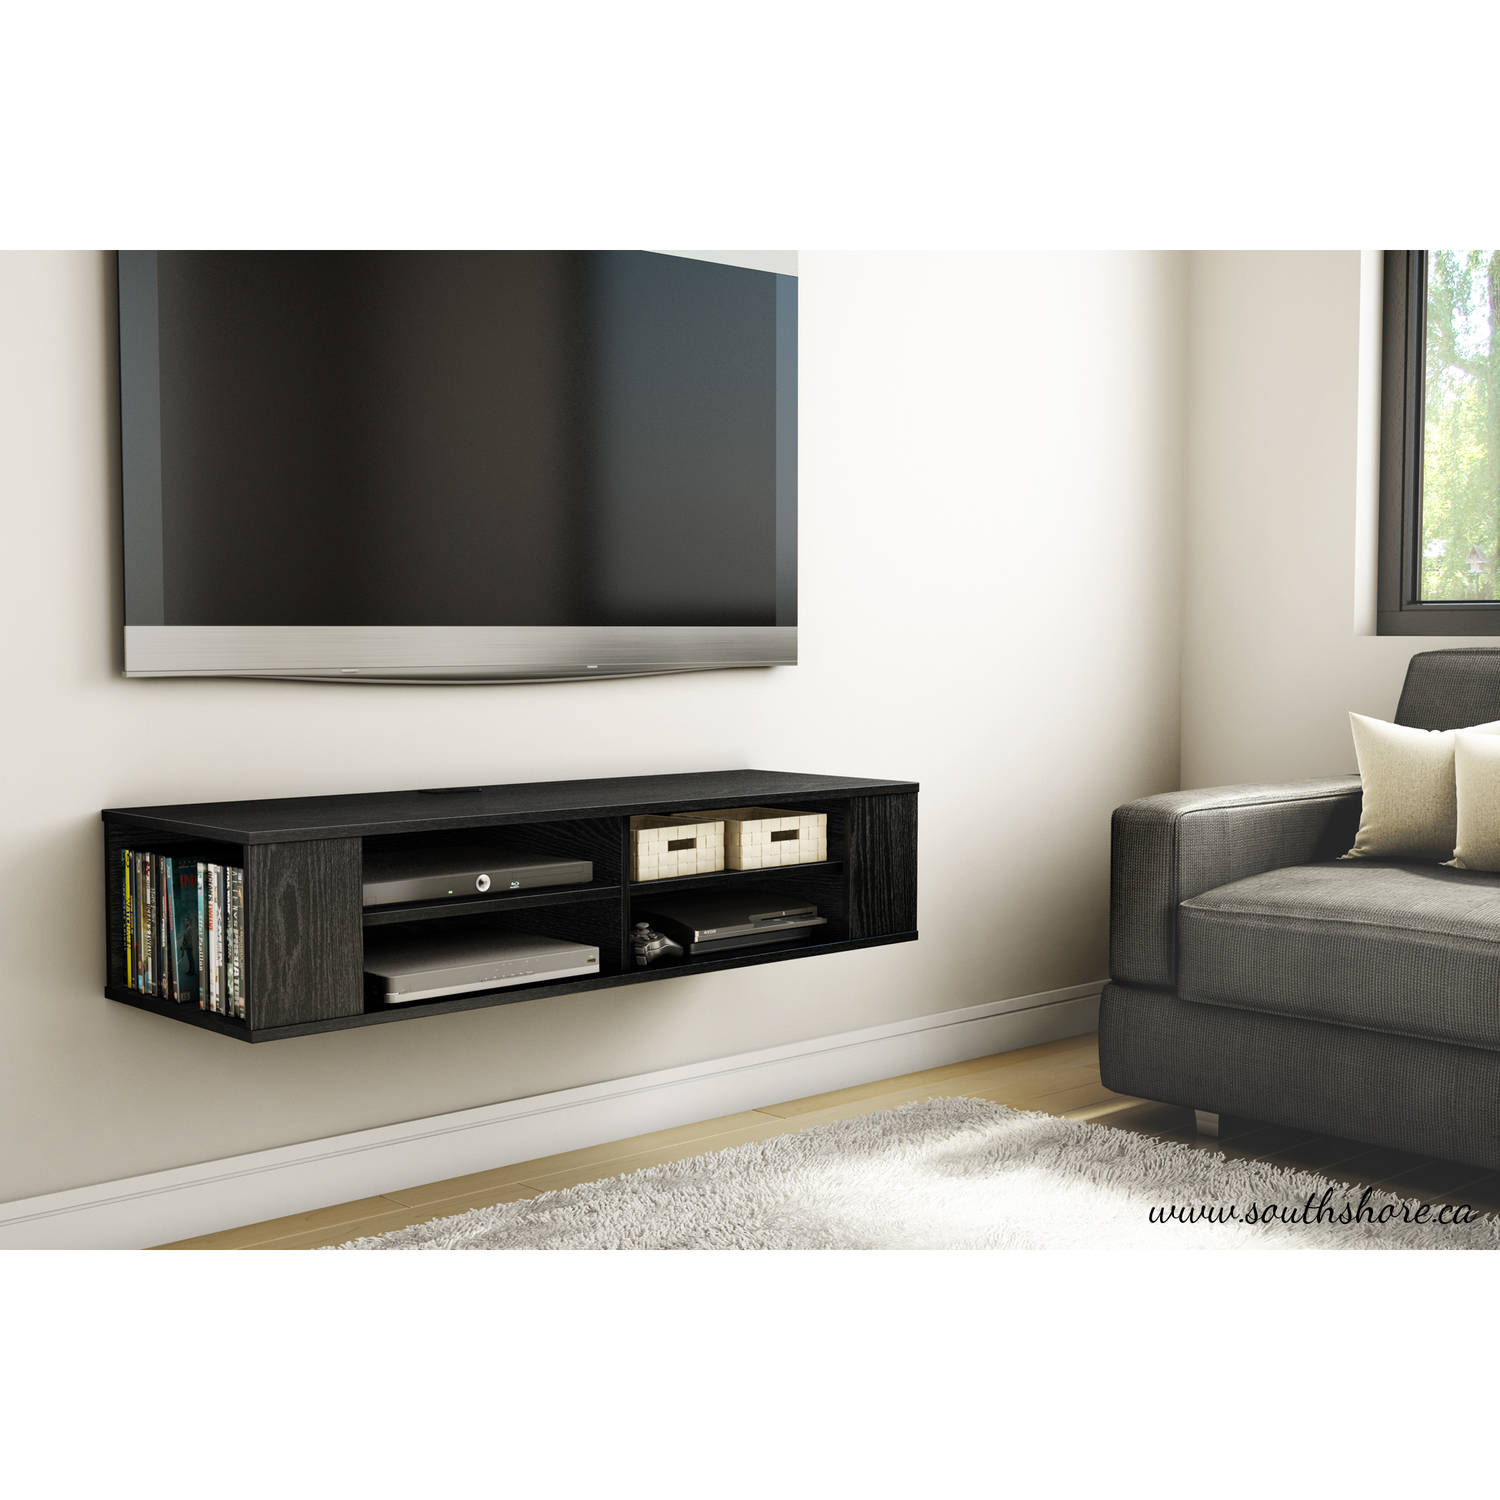 wall mount tv stand South Shore City Life 48